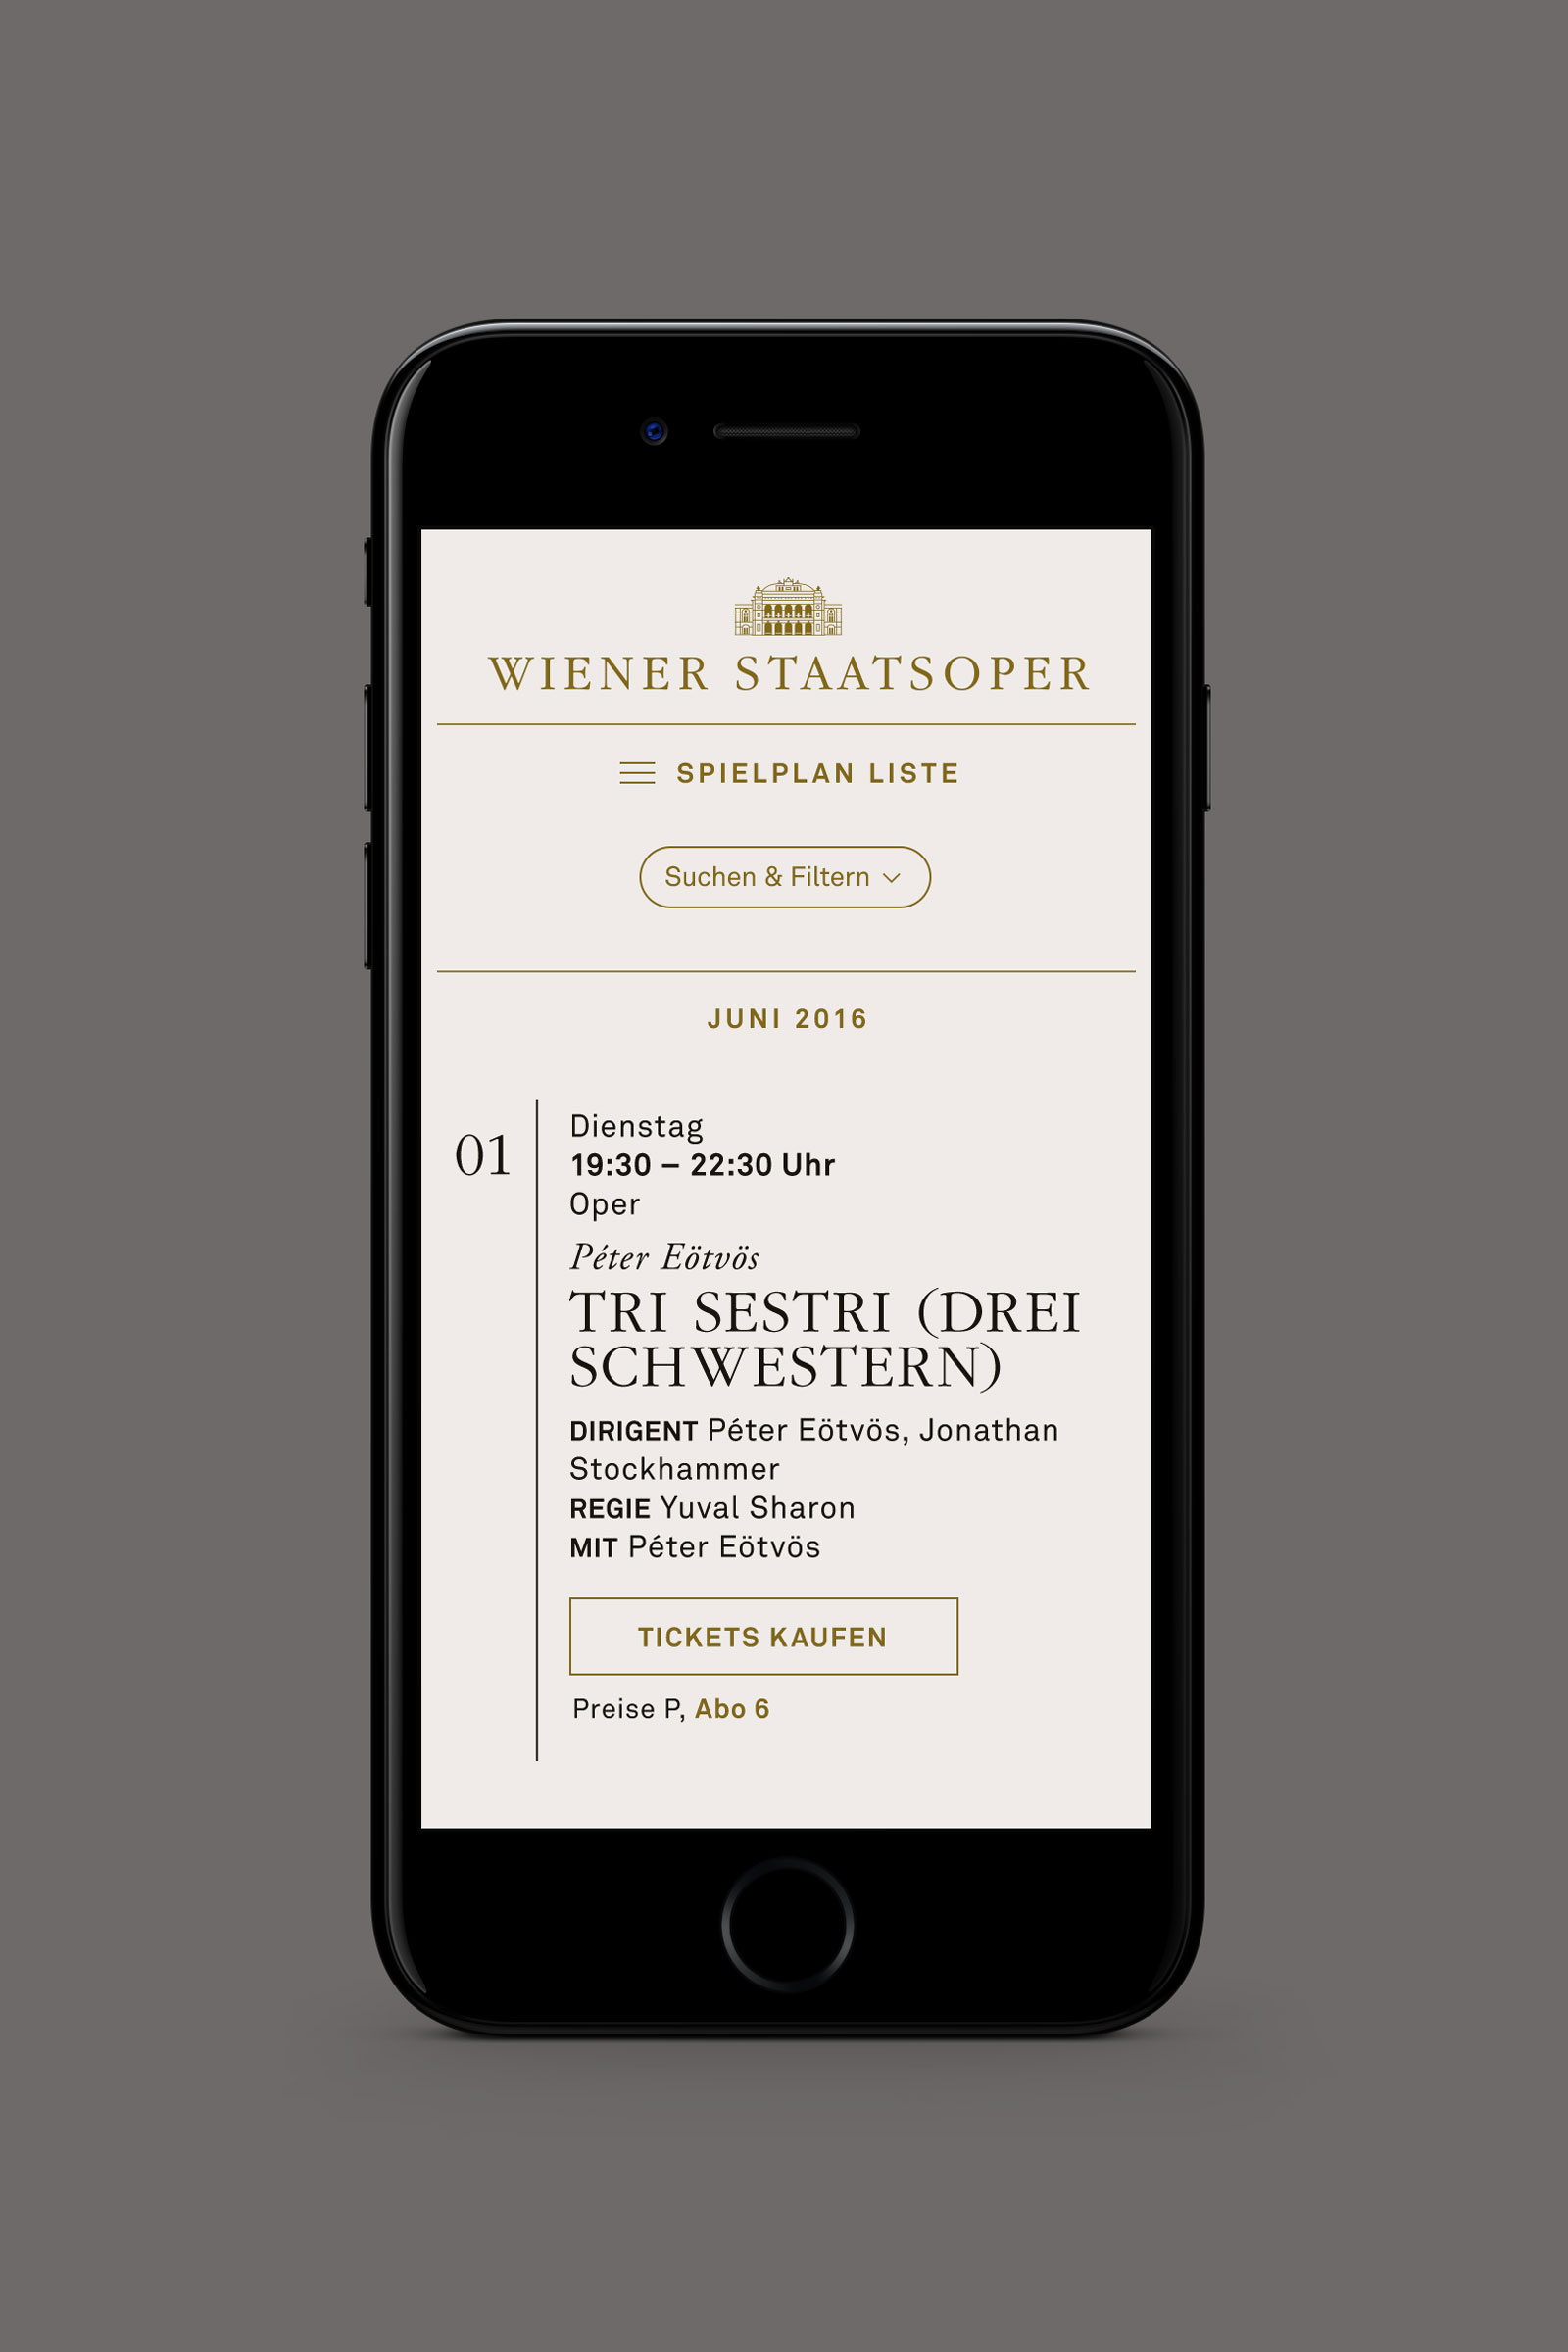 Staatsoper Wien Iphone 02